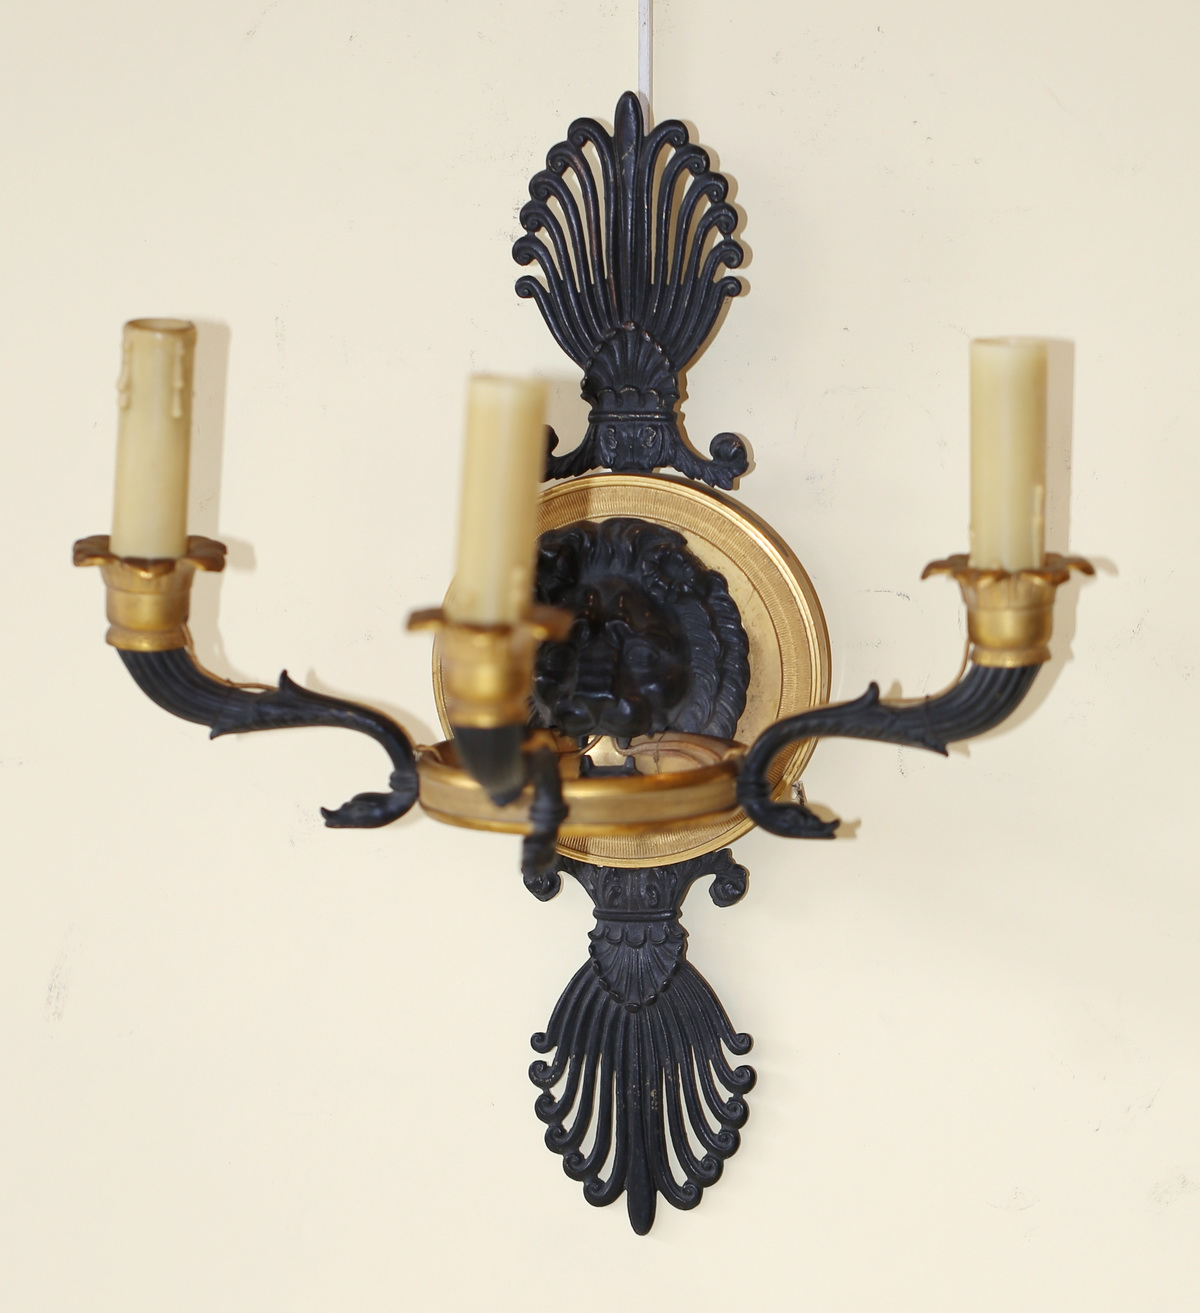 4 Empire style sconces early XX